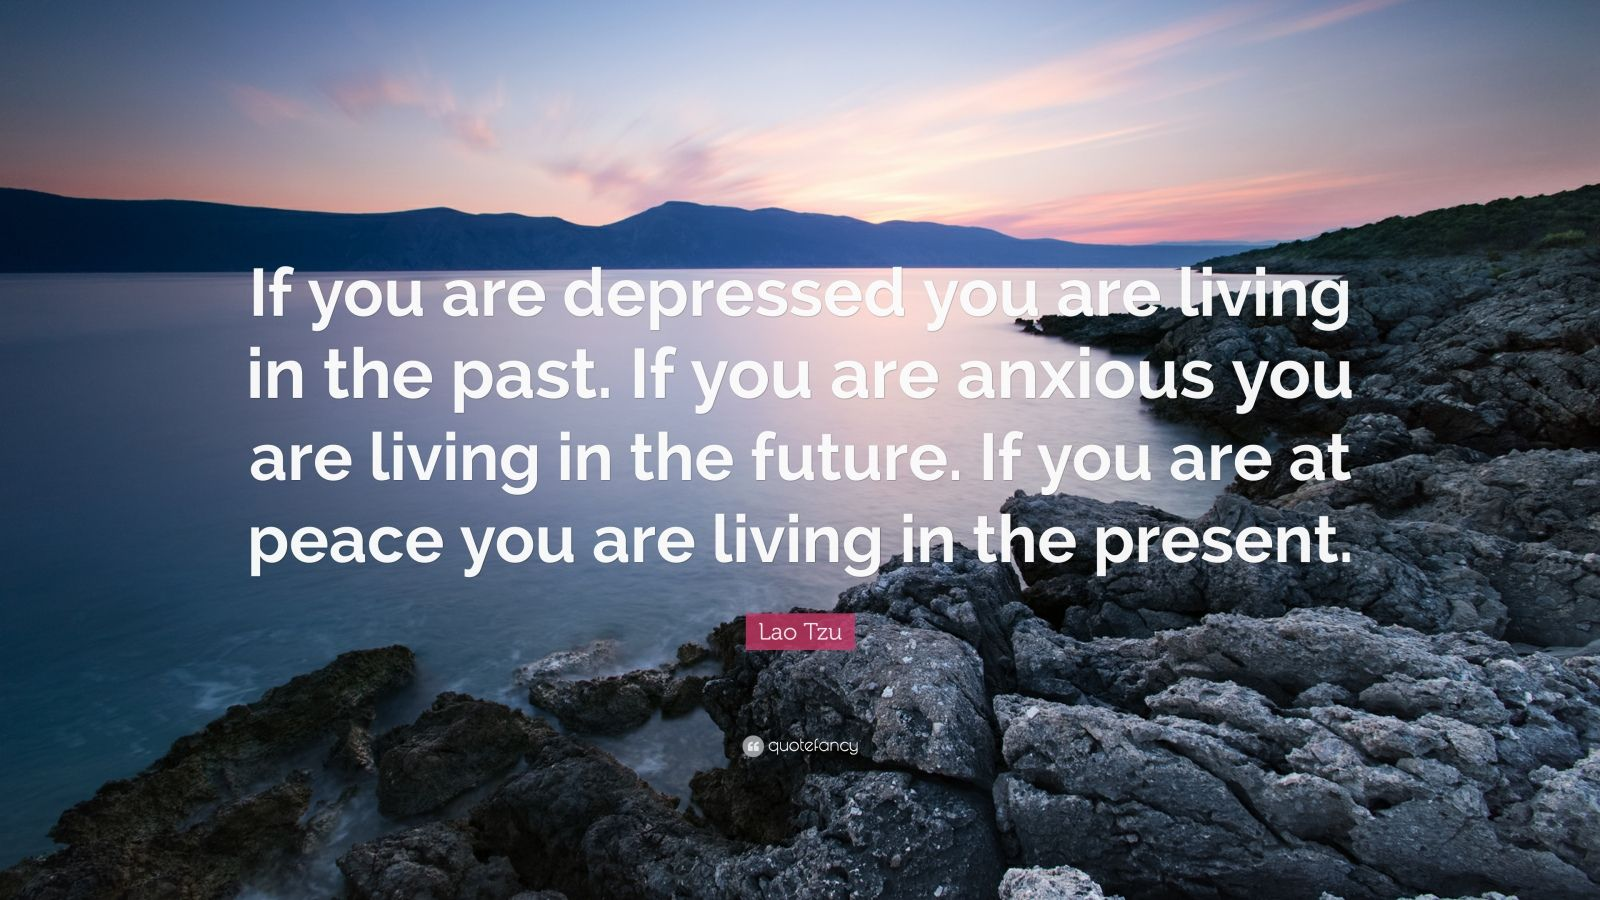 Are Depressed If You Living You Are If Living Anxious T Are You Are Future You